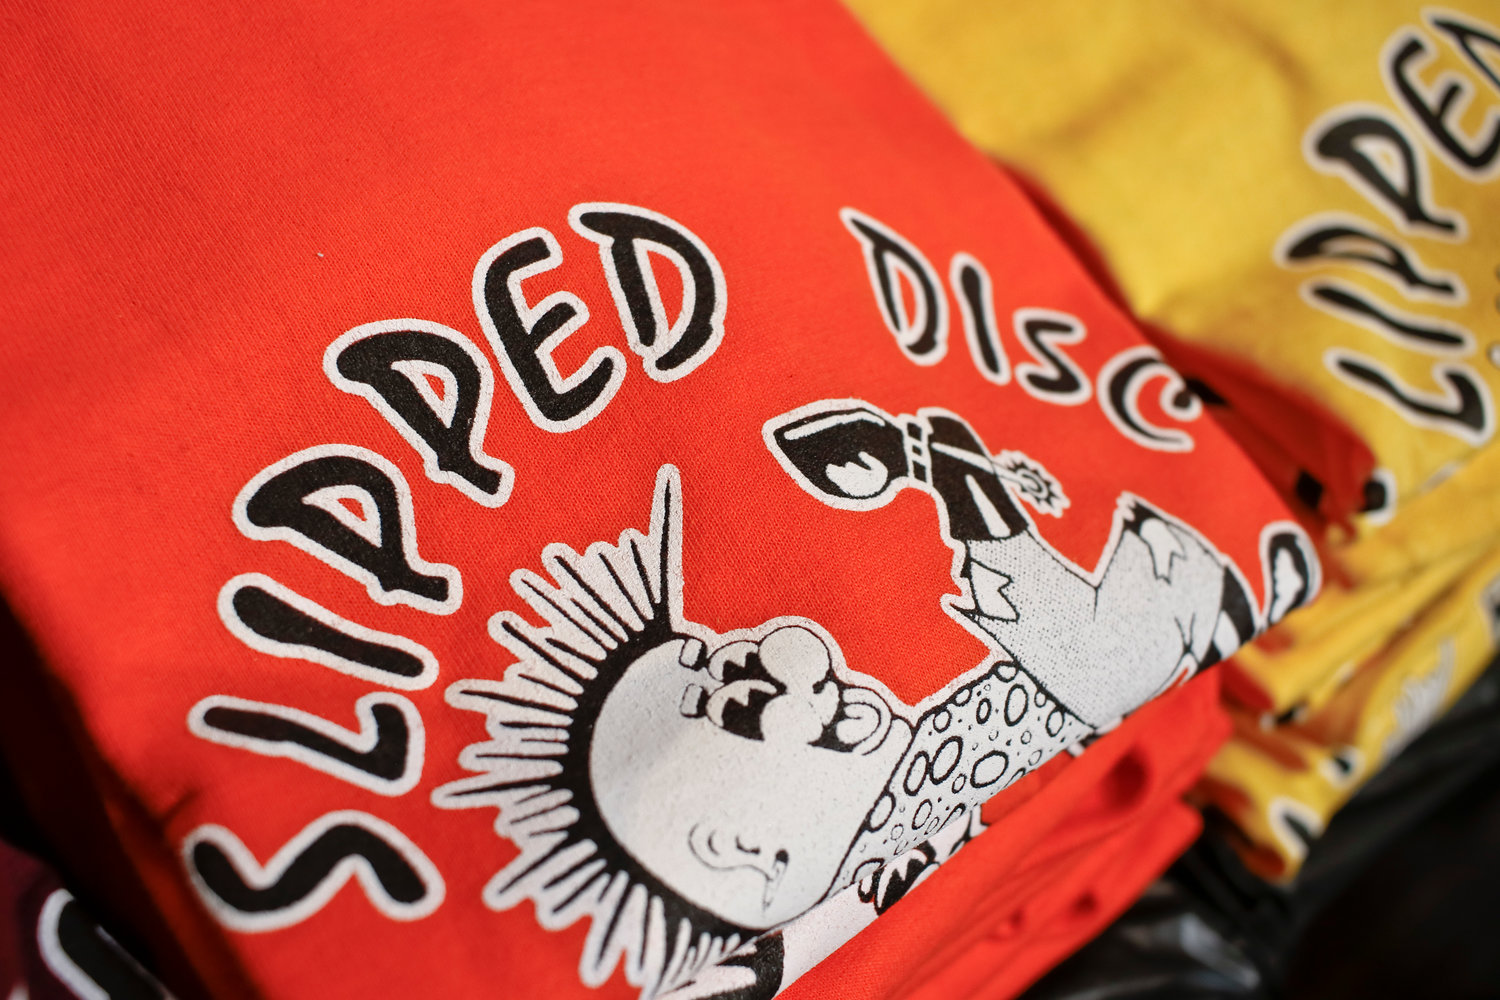 Schutzman said he's kept the Slipped Disc brand alive by selling merchandise online and by organizing pop-up record shops.